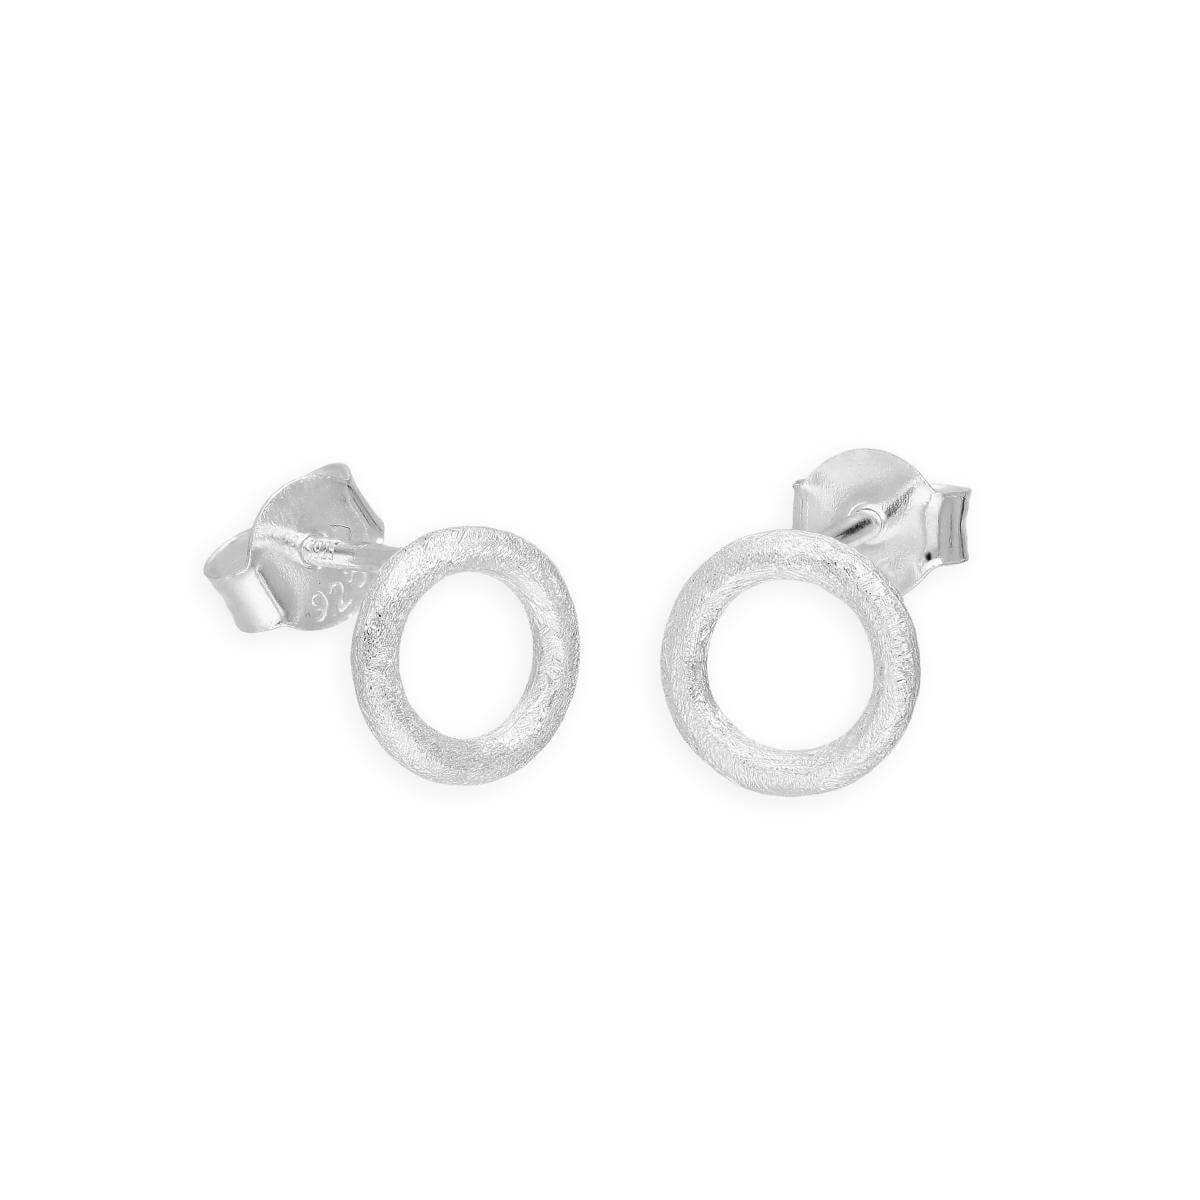 Brushed Sterling Silver Karma Ring Stud Earrings